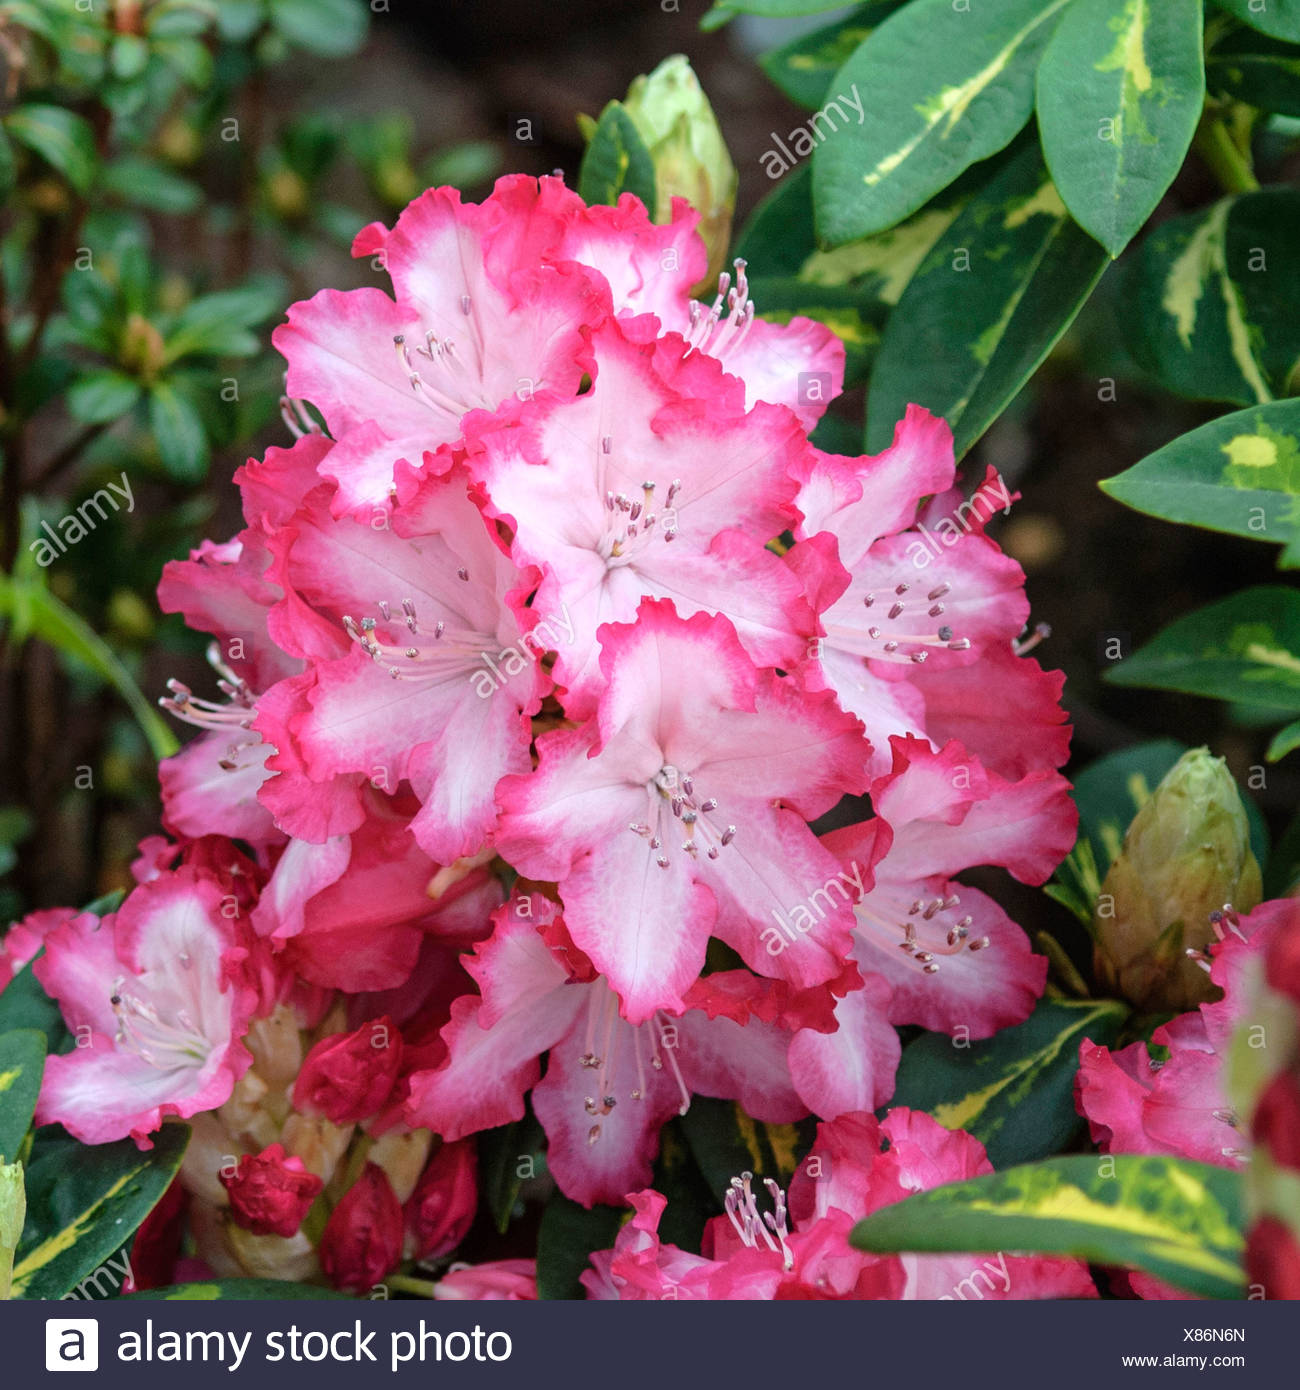 rhododendron (Rhododendron 'President Roosevelt', Rhododendron President Roosevelt), cultivar President Roosevelt - Stock Image